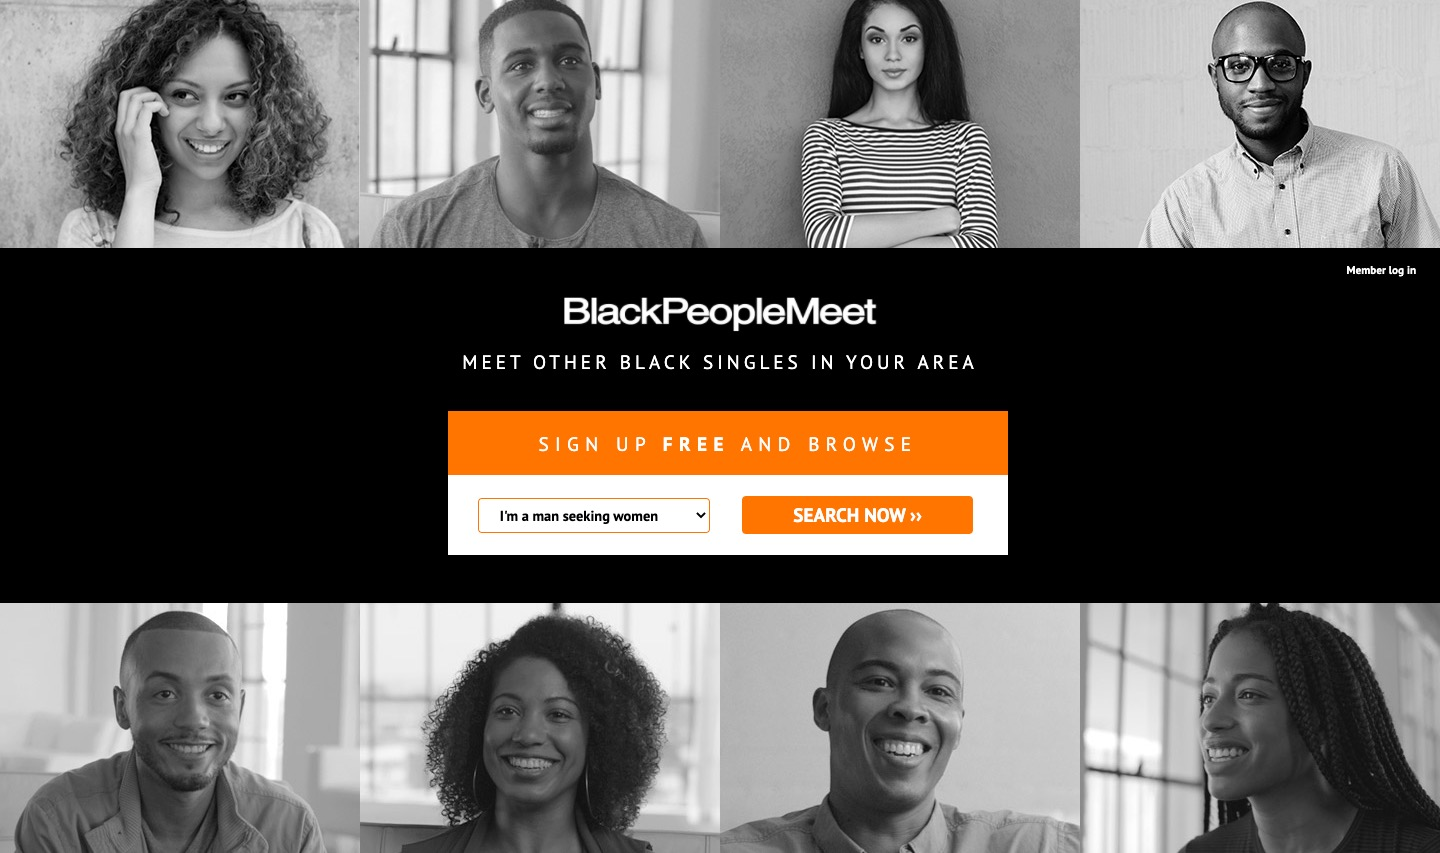 BlackPeopleMeet main page